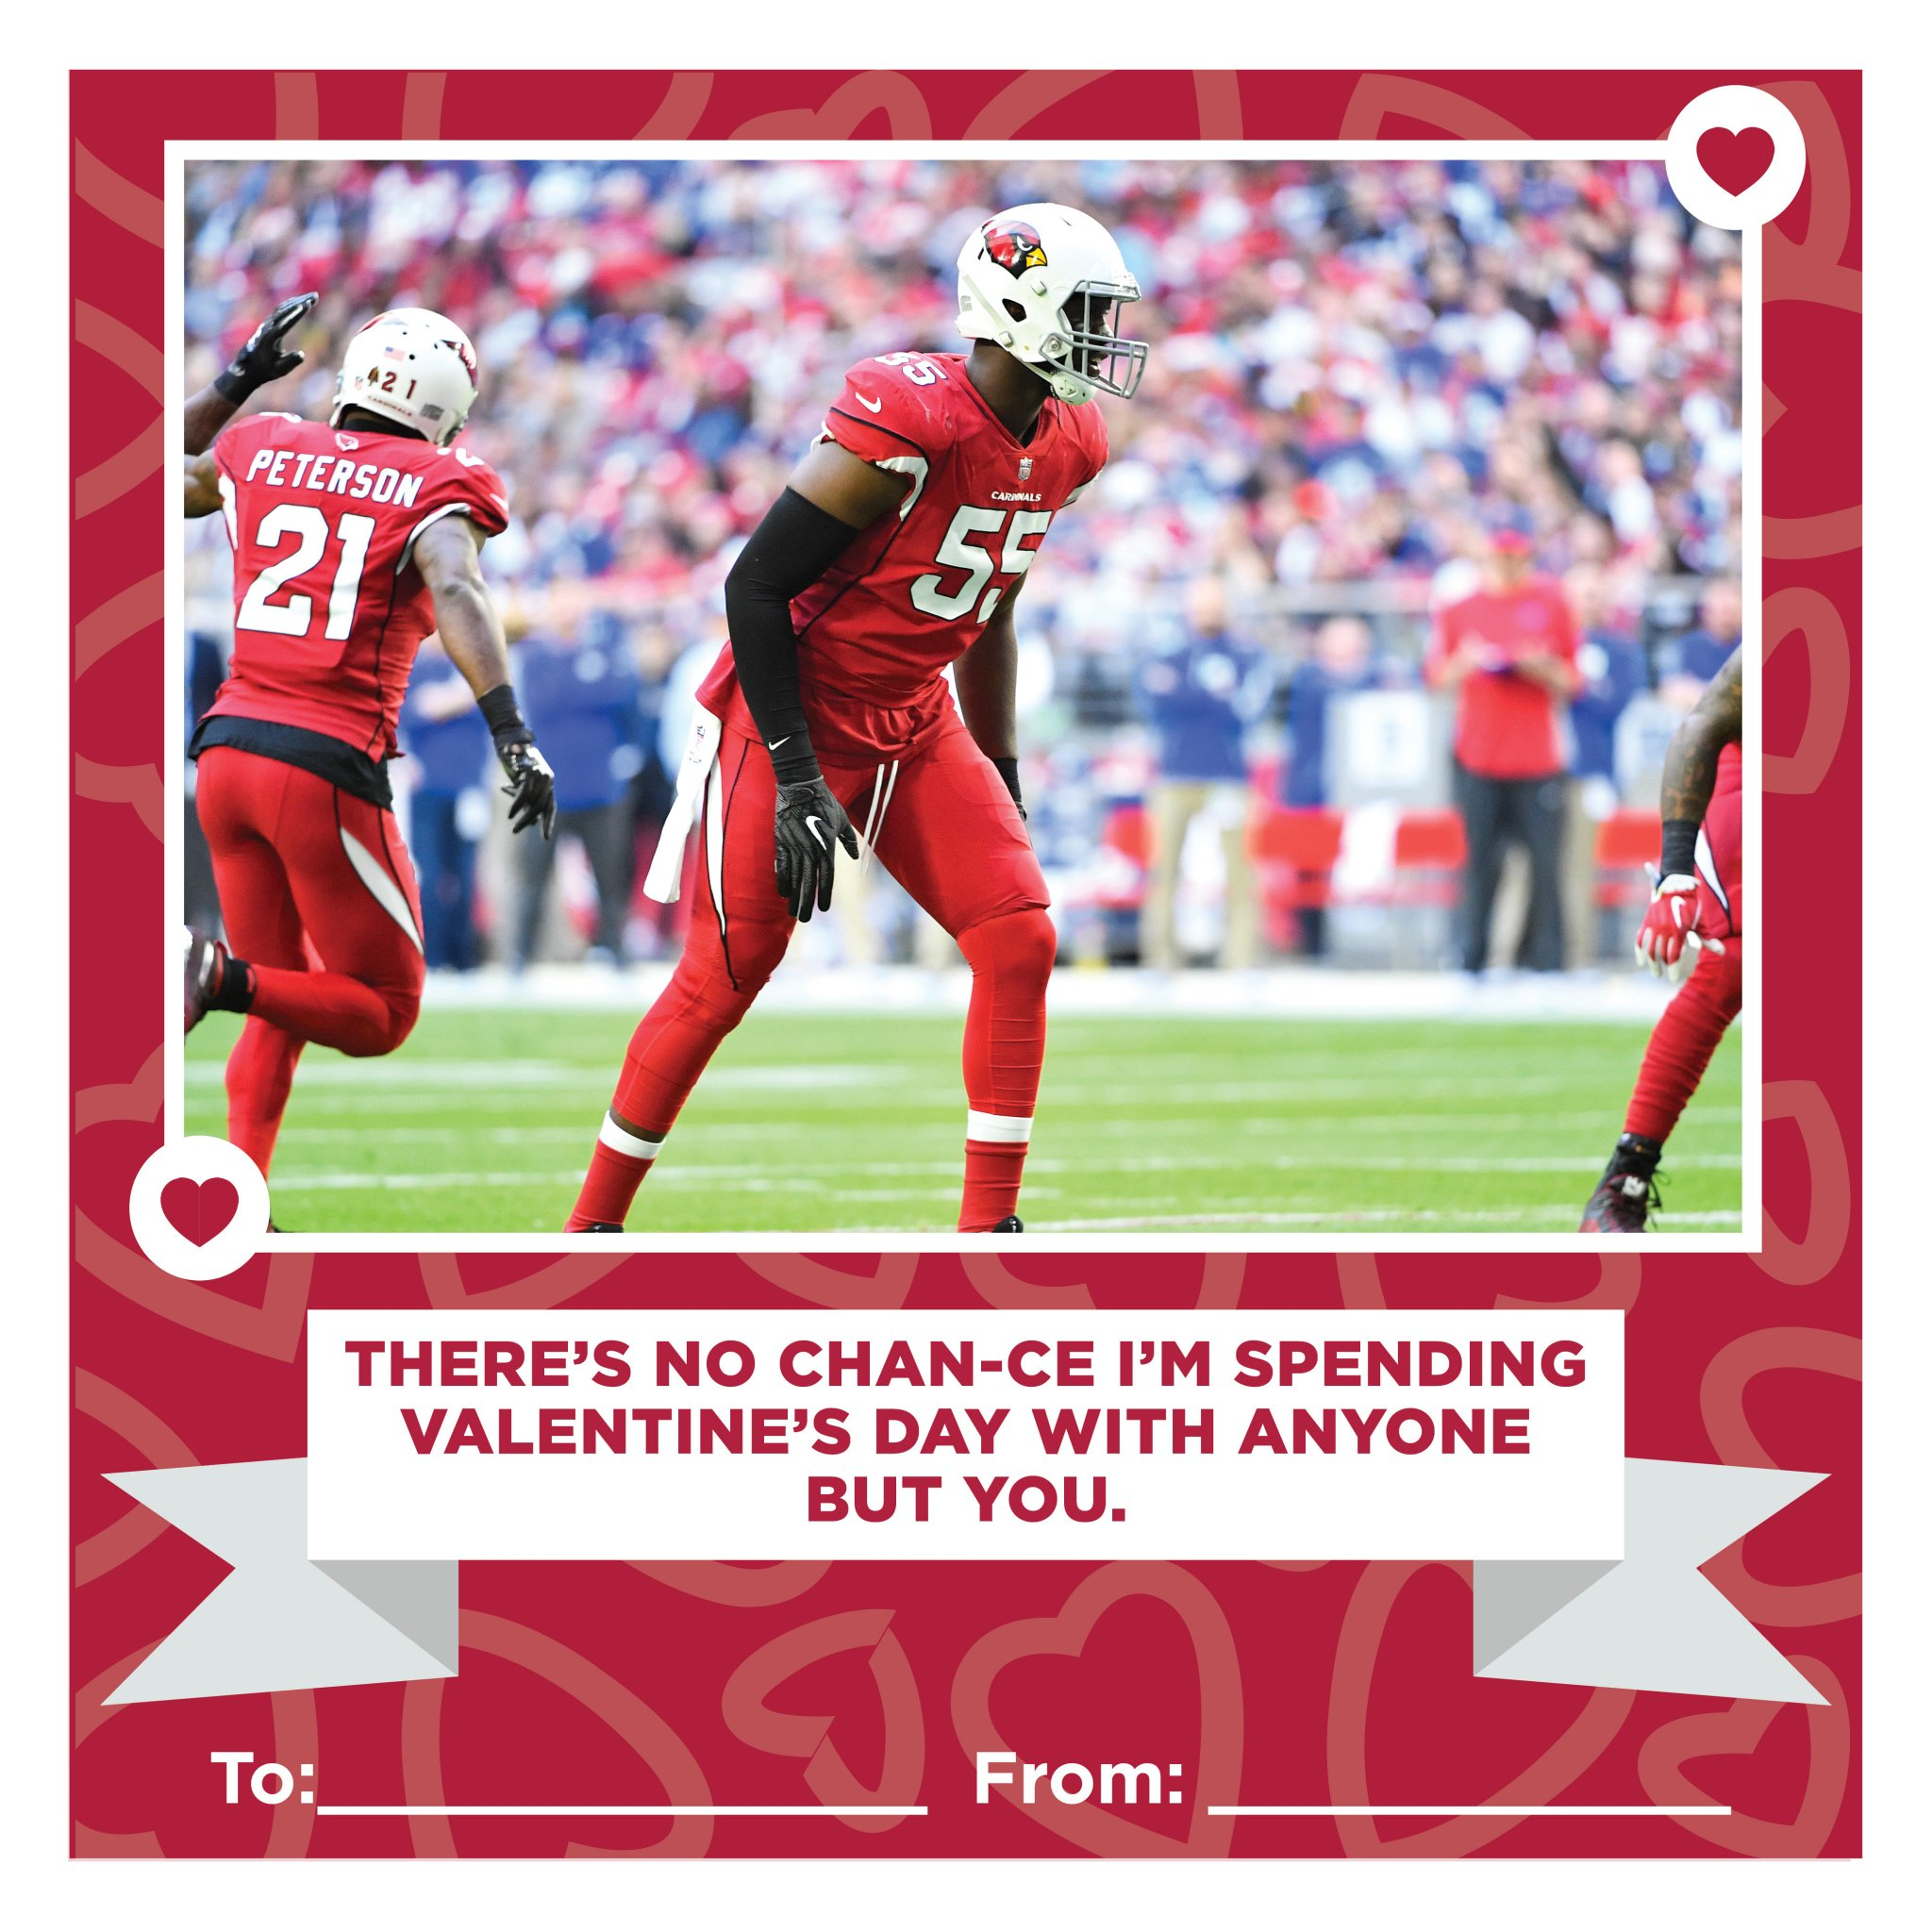 Your Valentine will surely dance after receiving this. https://t.co/HEXJwZXOaO